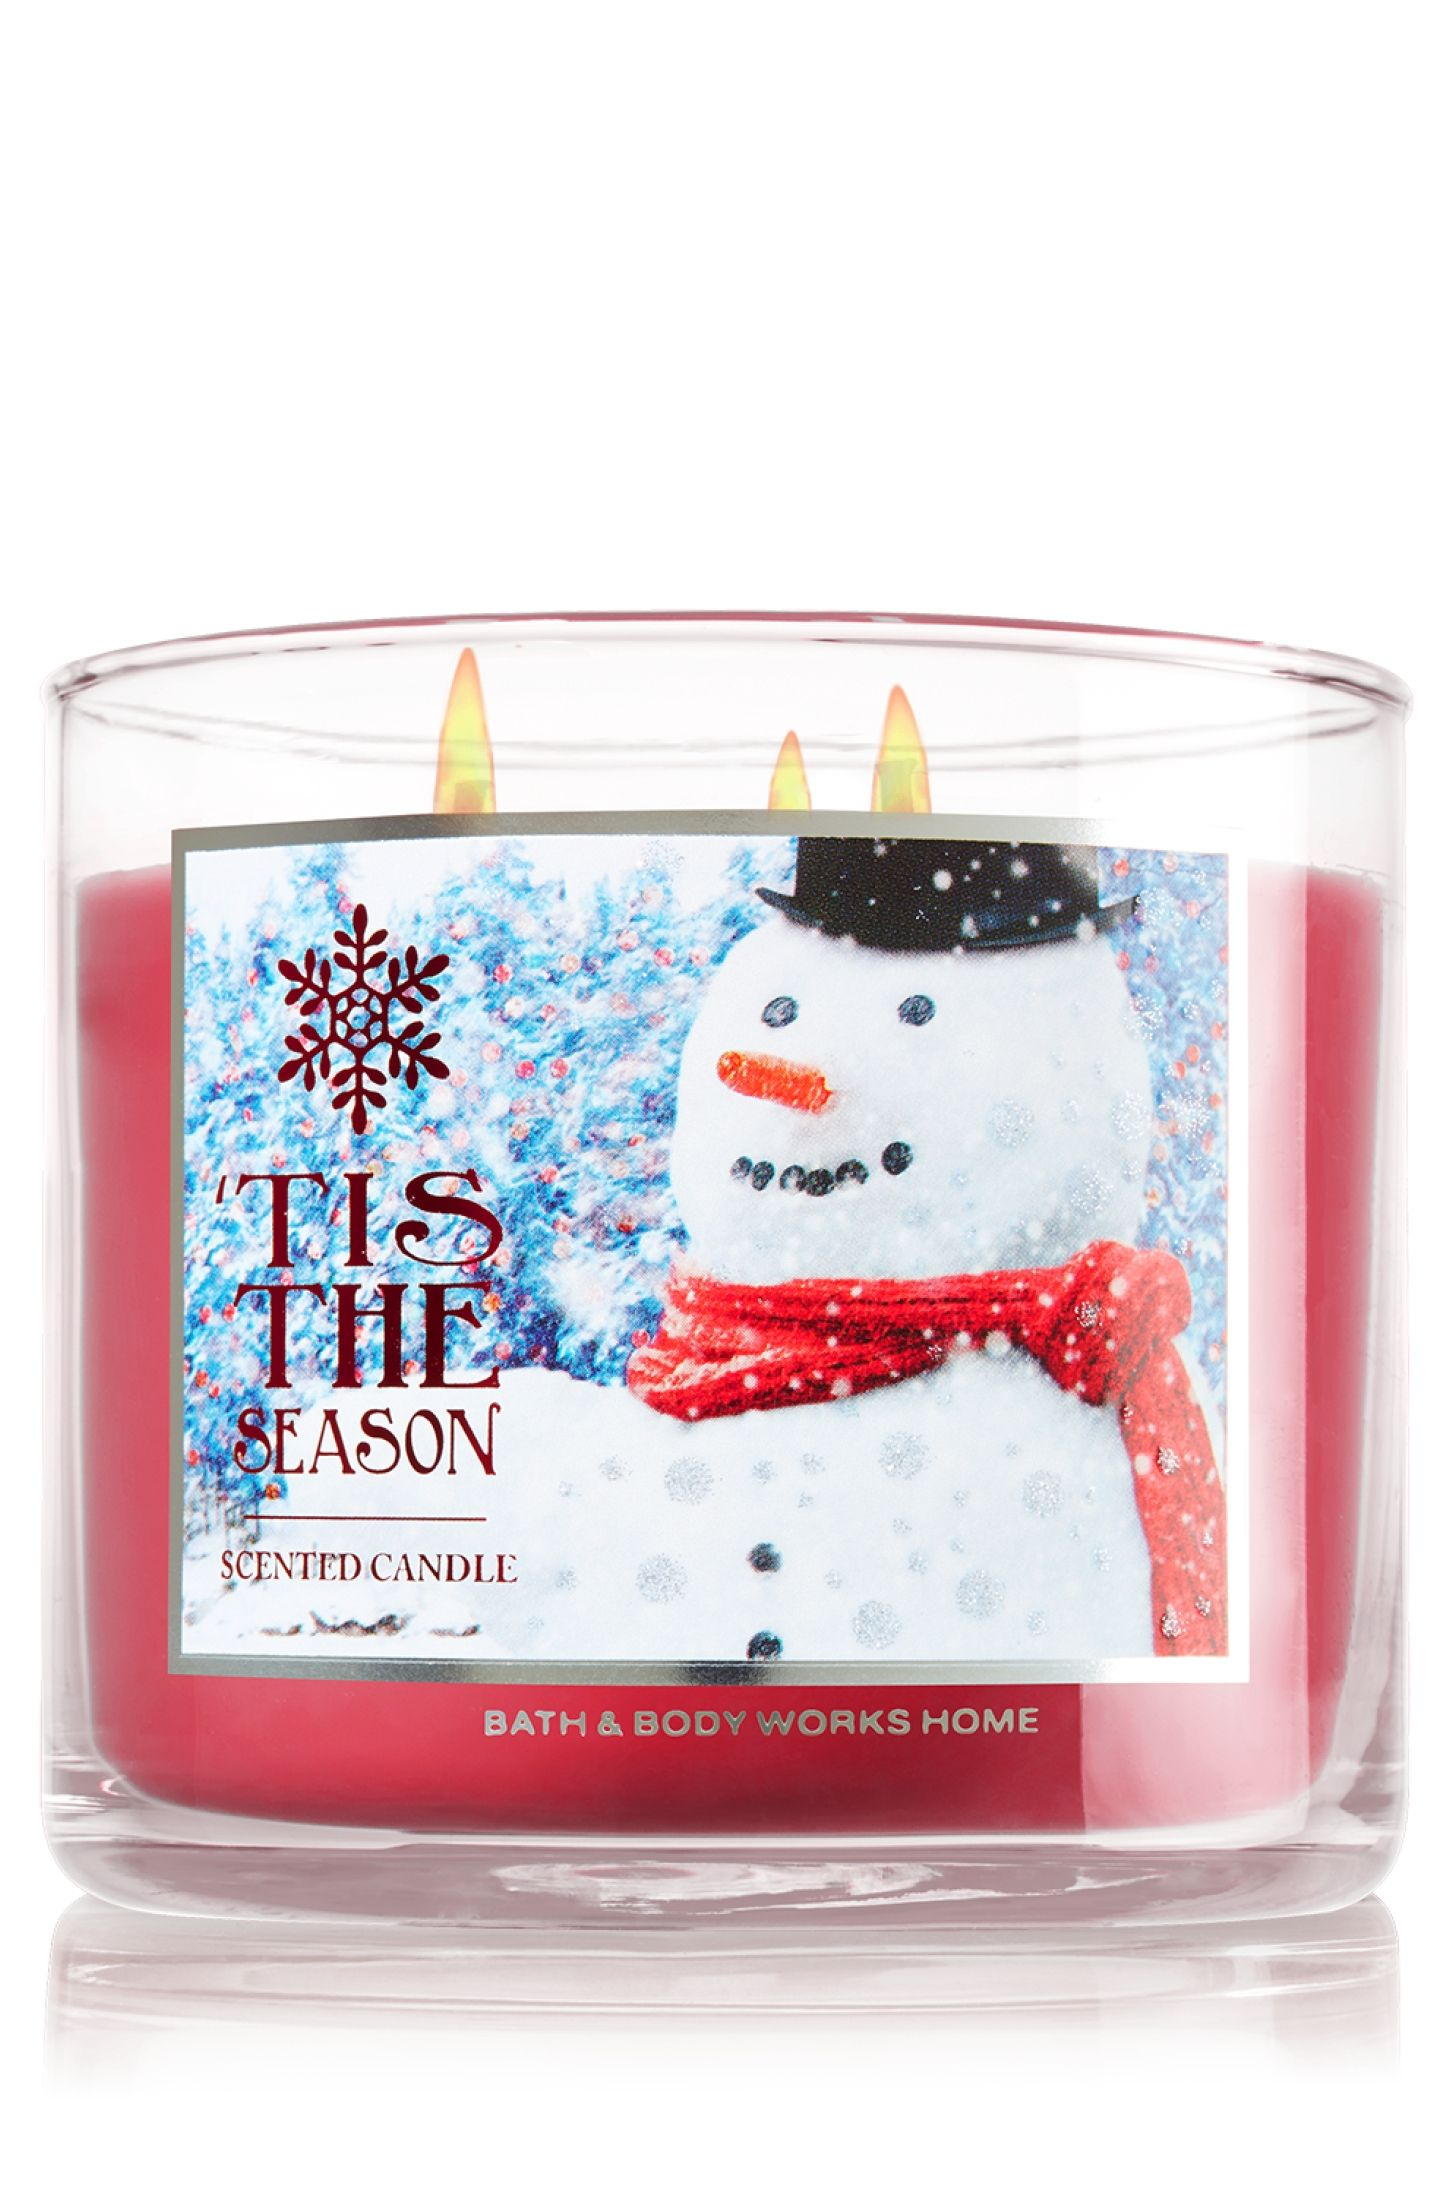 Tis The Season 3 Wick Candle Home Fragrance 1037181 Bath